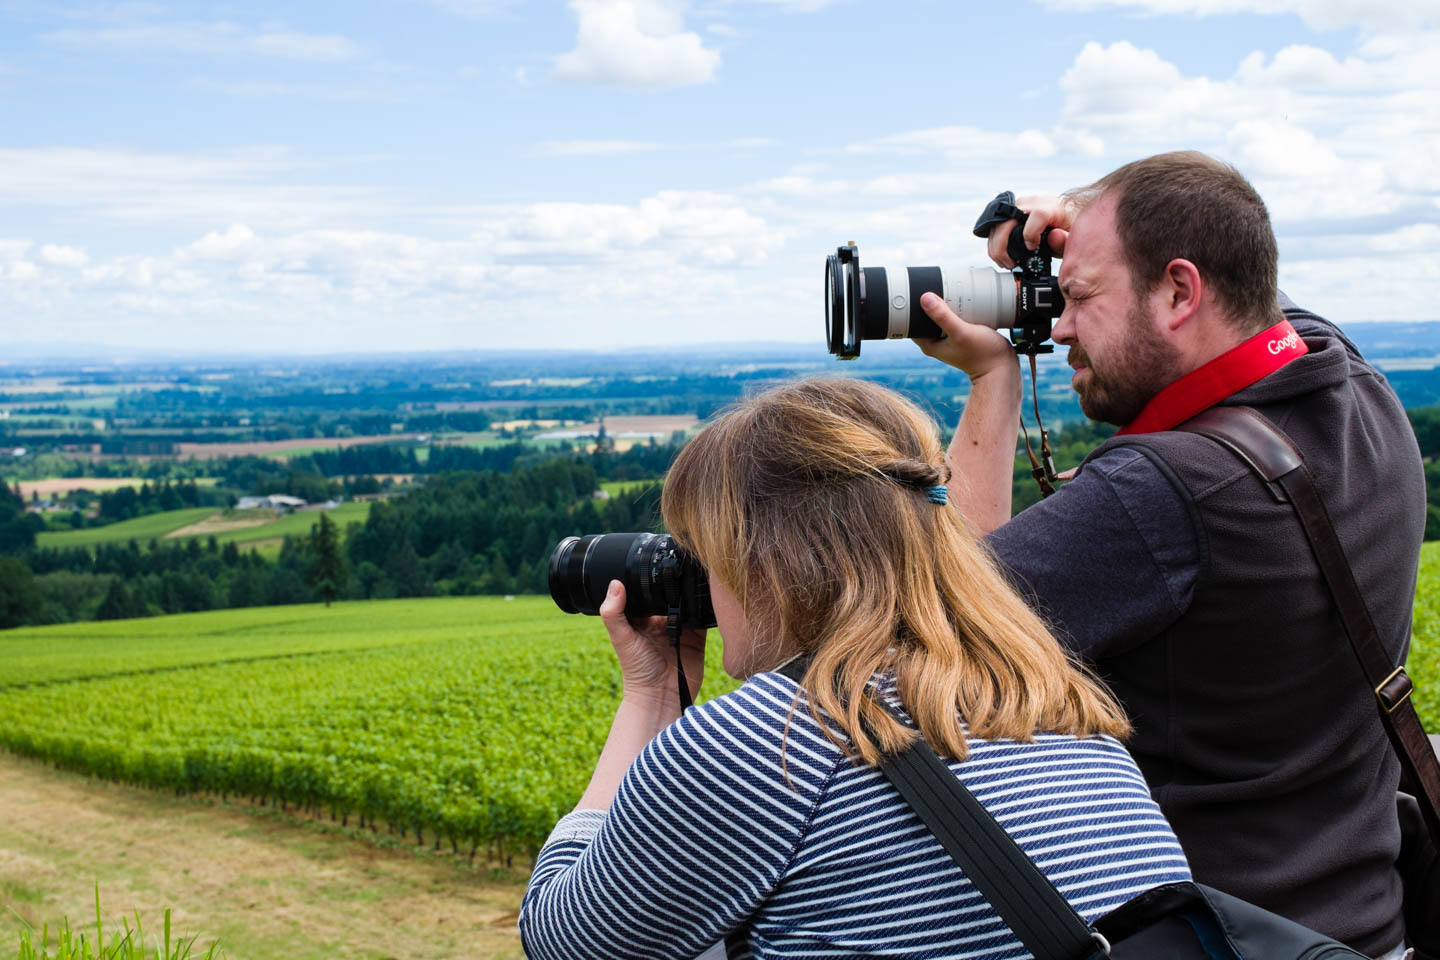 Nicolesy and Brian photograph the countryside